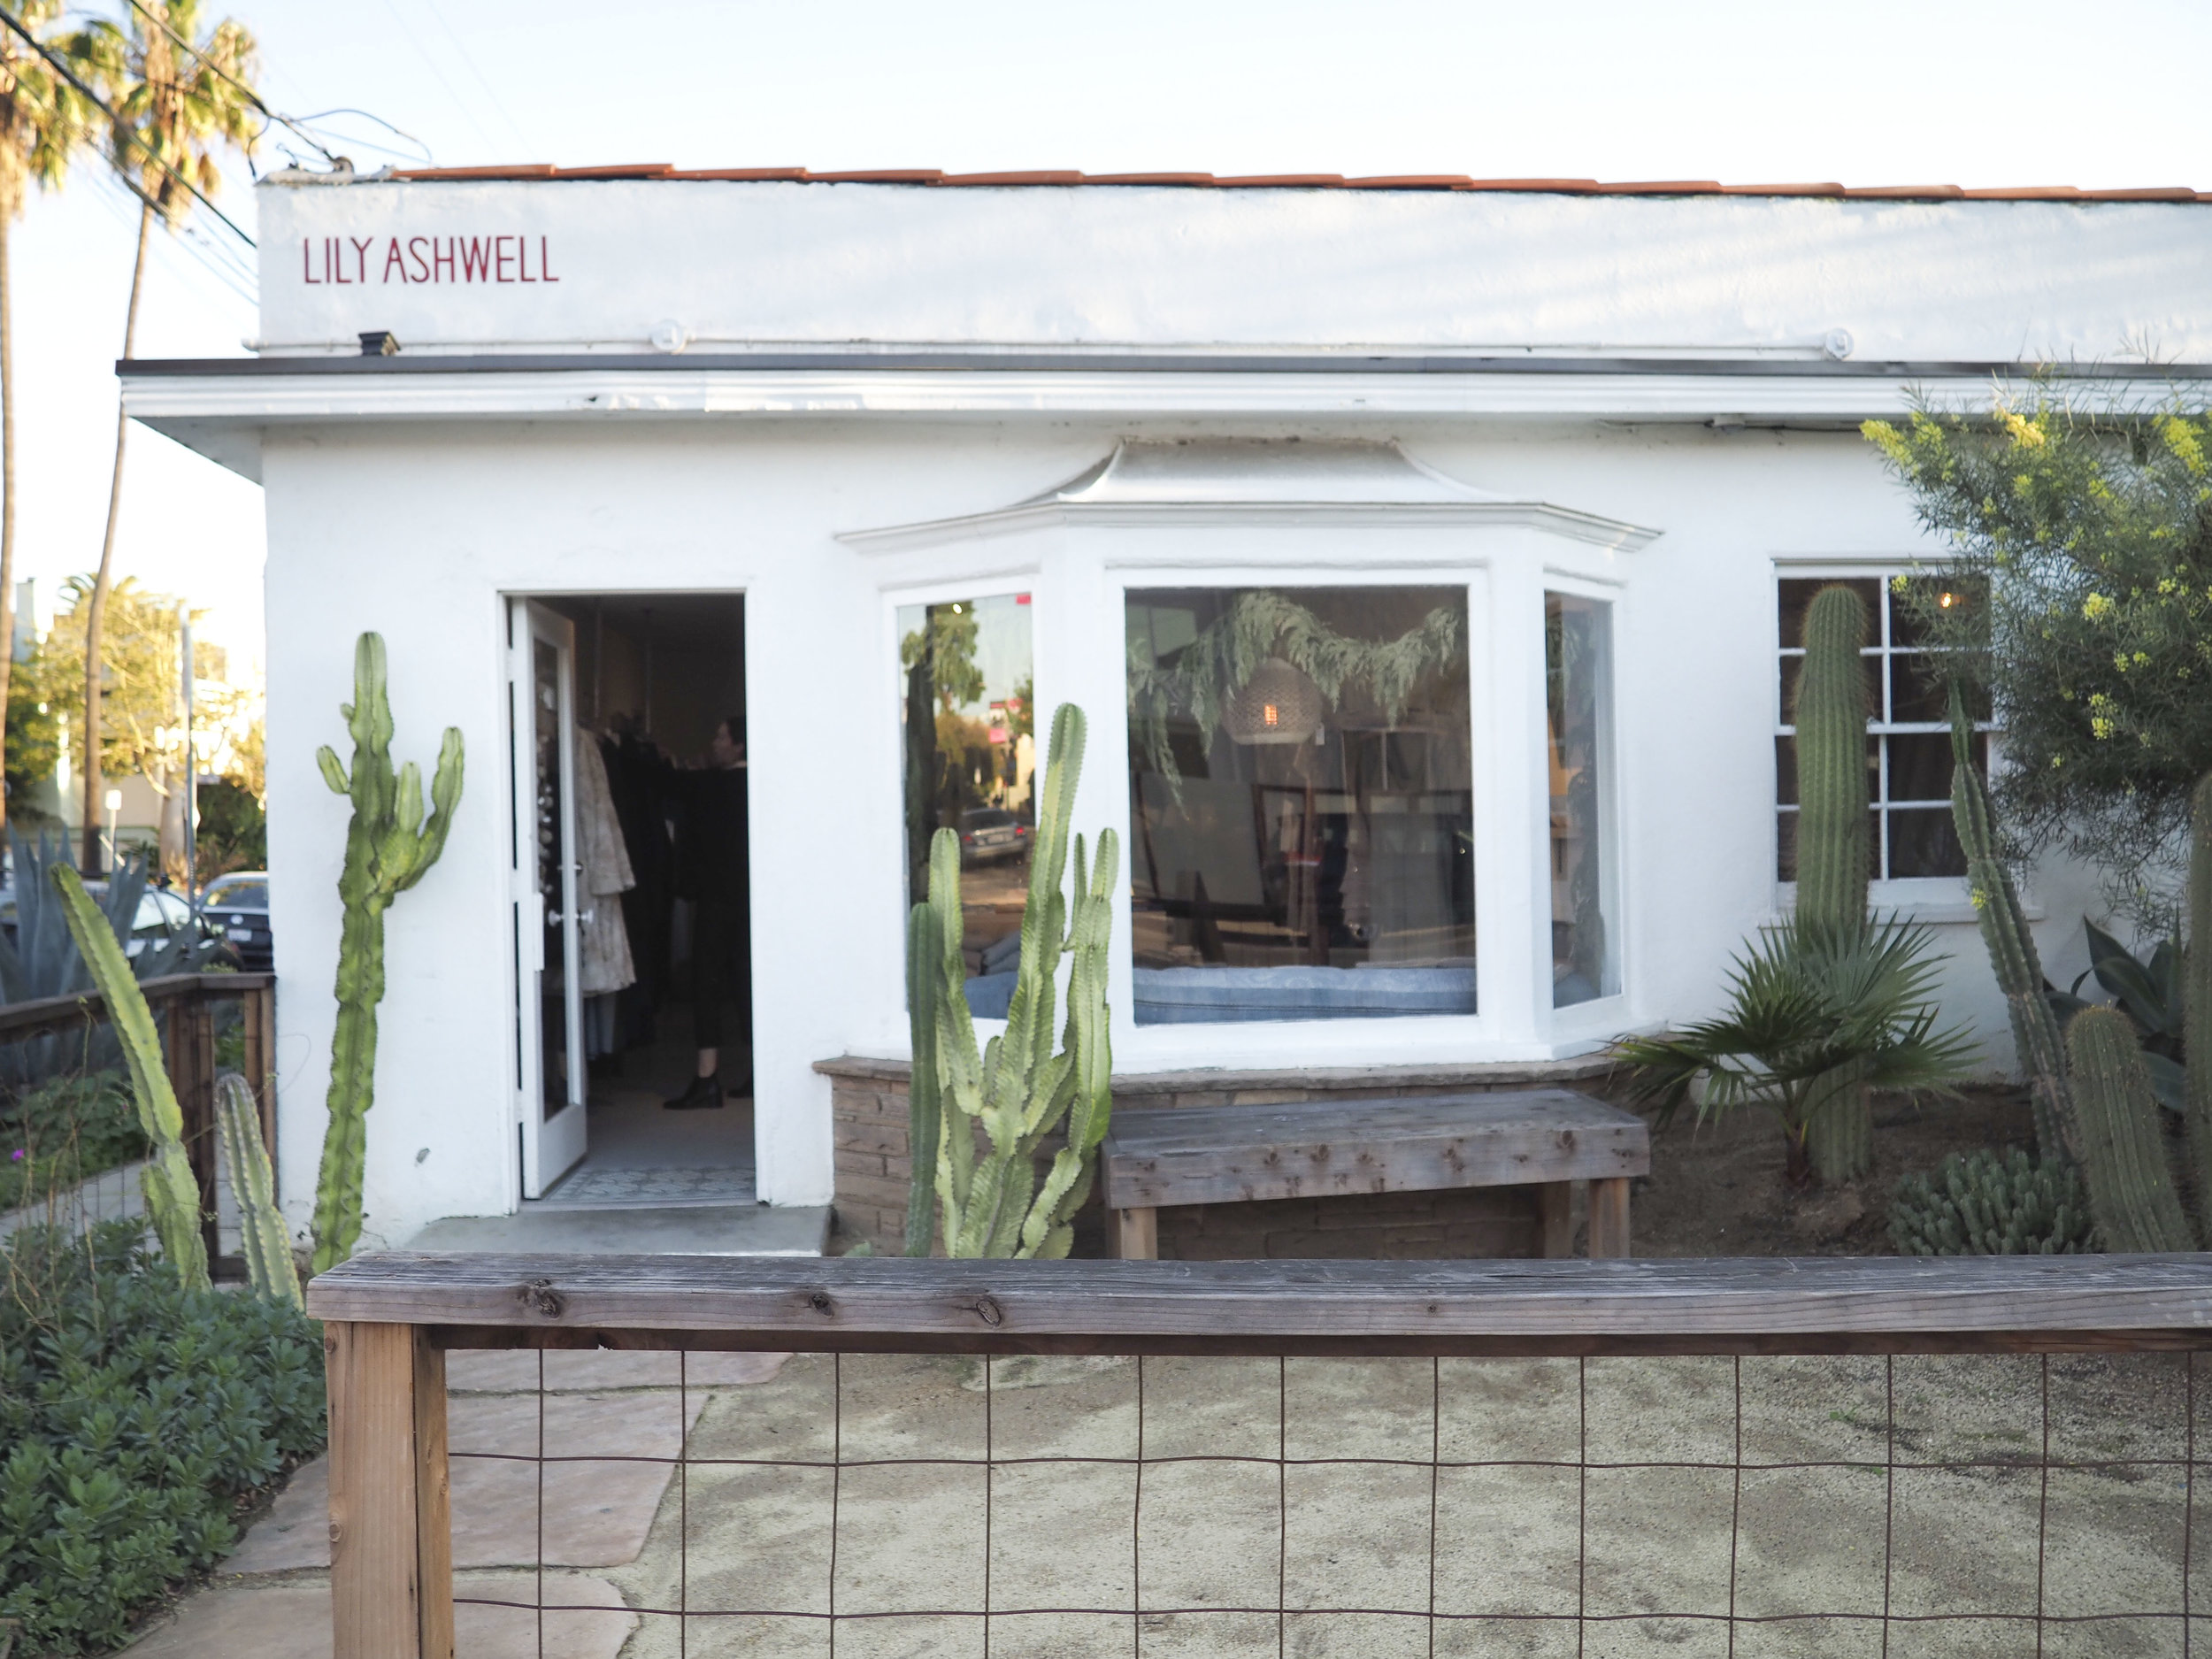 The Lily Ashwell shop in Venice has a nice selection of items. I love to stop there each time I visit Los Angeles.